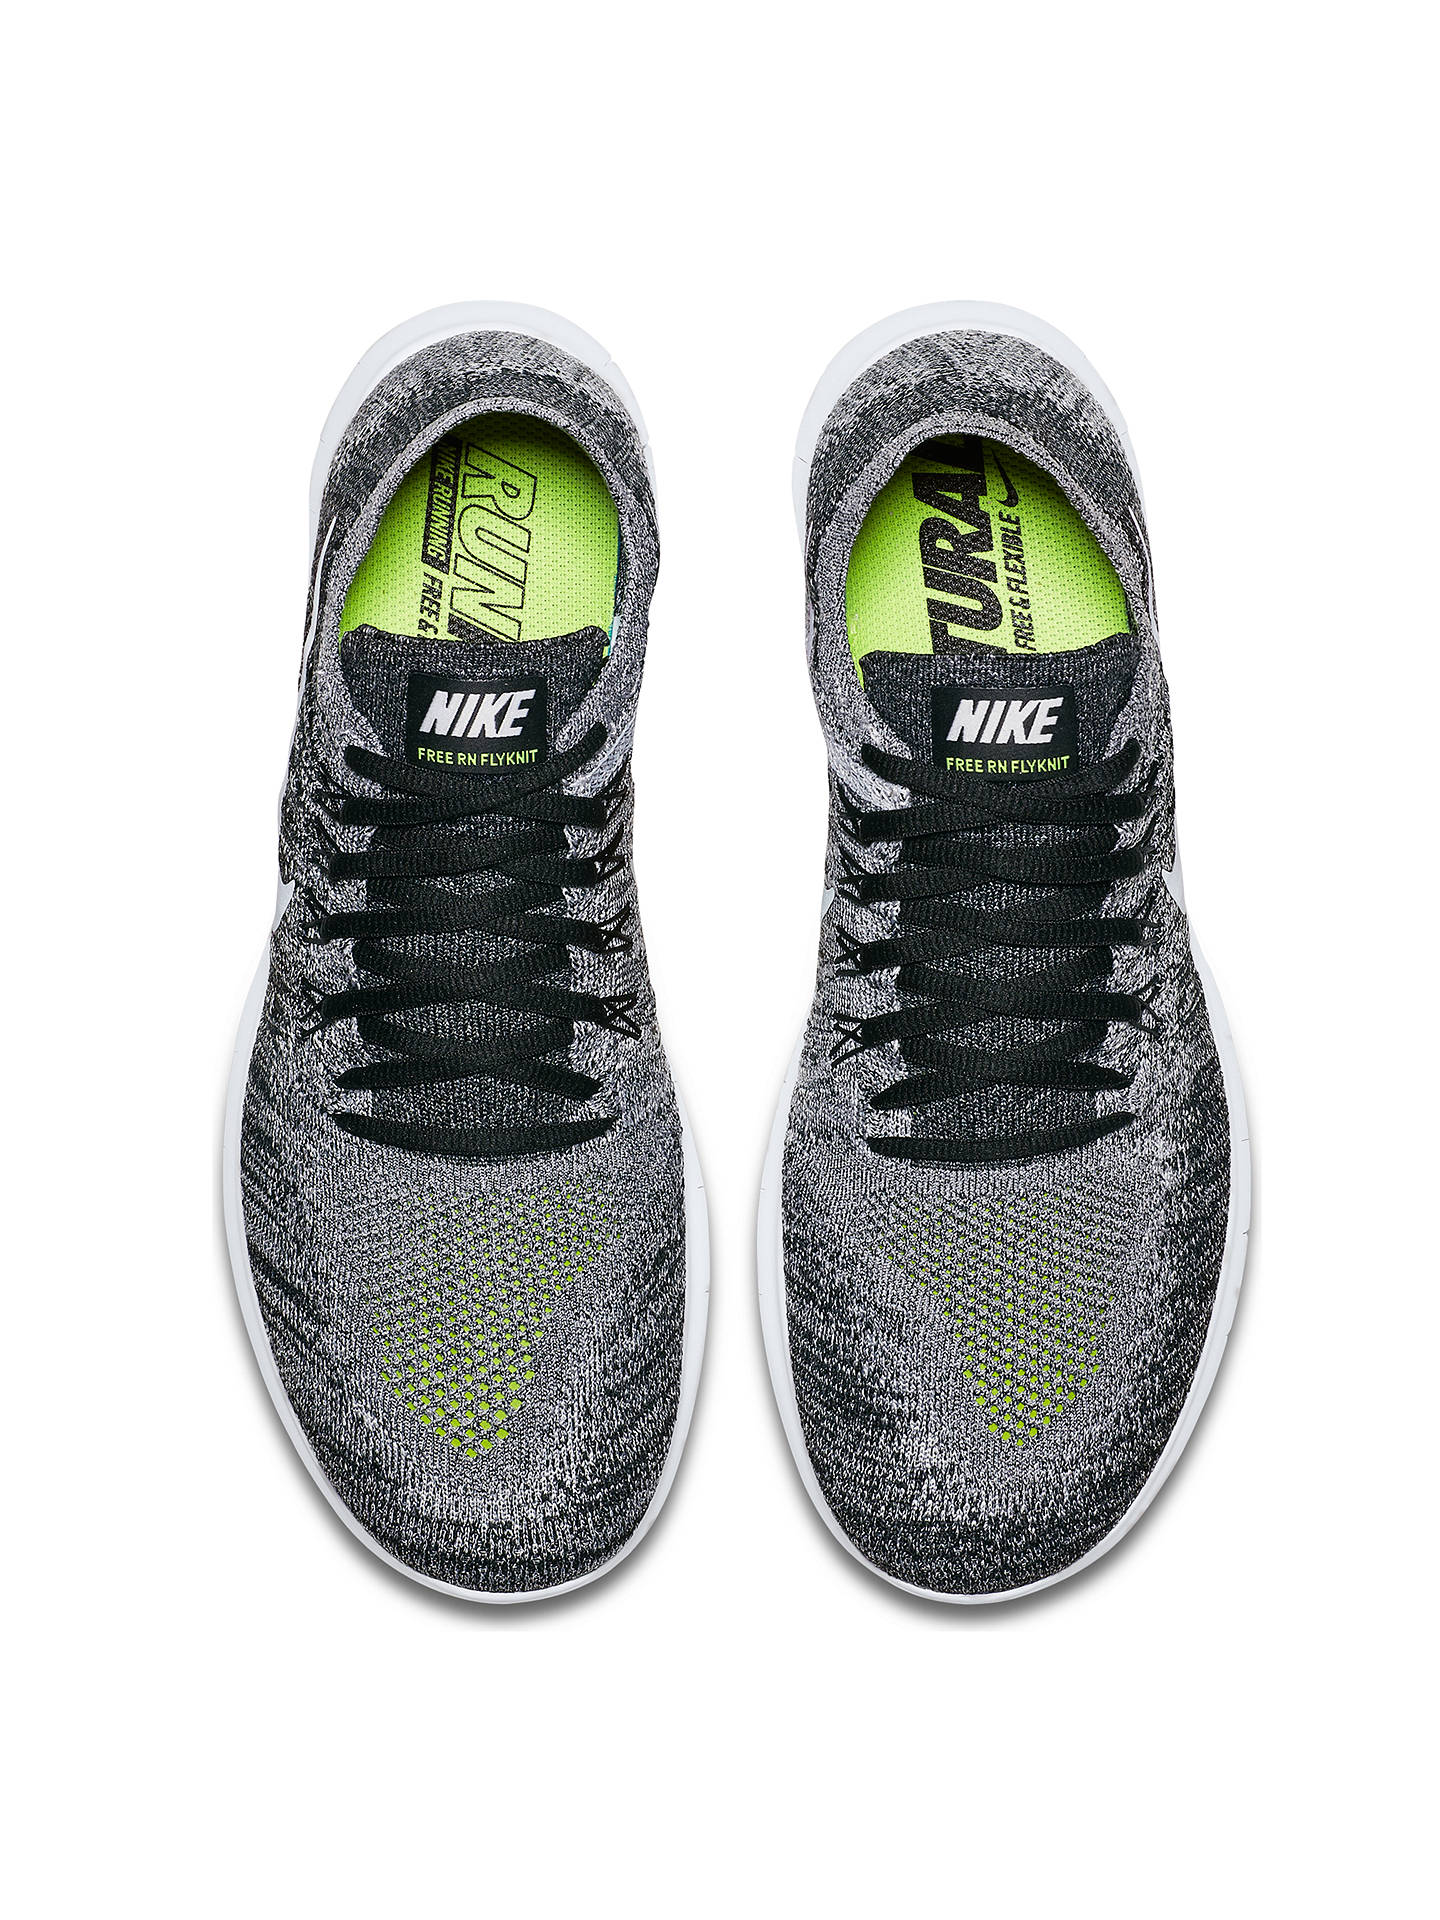 premium selection ef521 f29cd ... BuyNike Free RN Flyknit 2017 Mens Running Shoes, BlackVolt, 7 Online  at ...